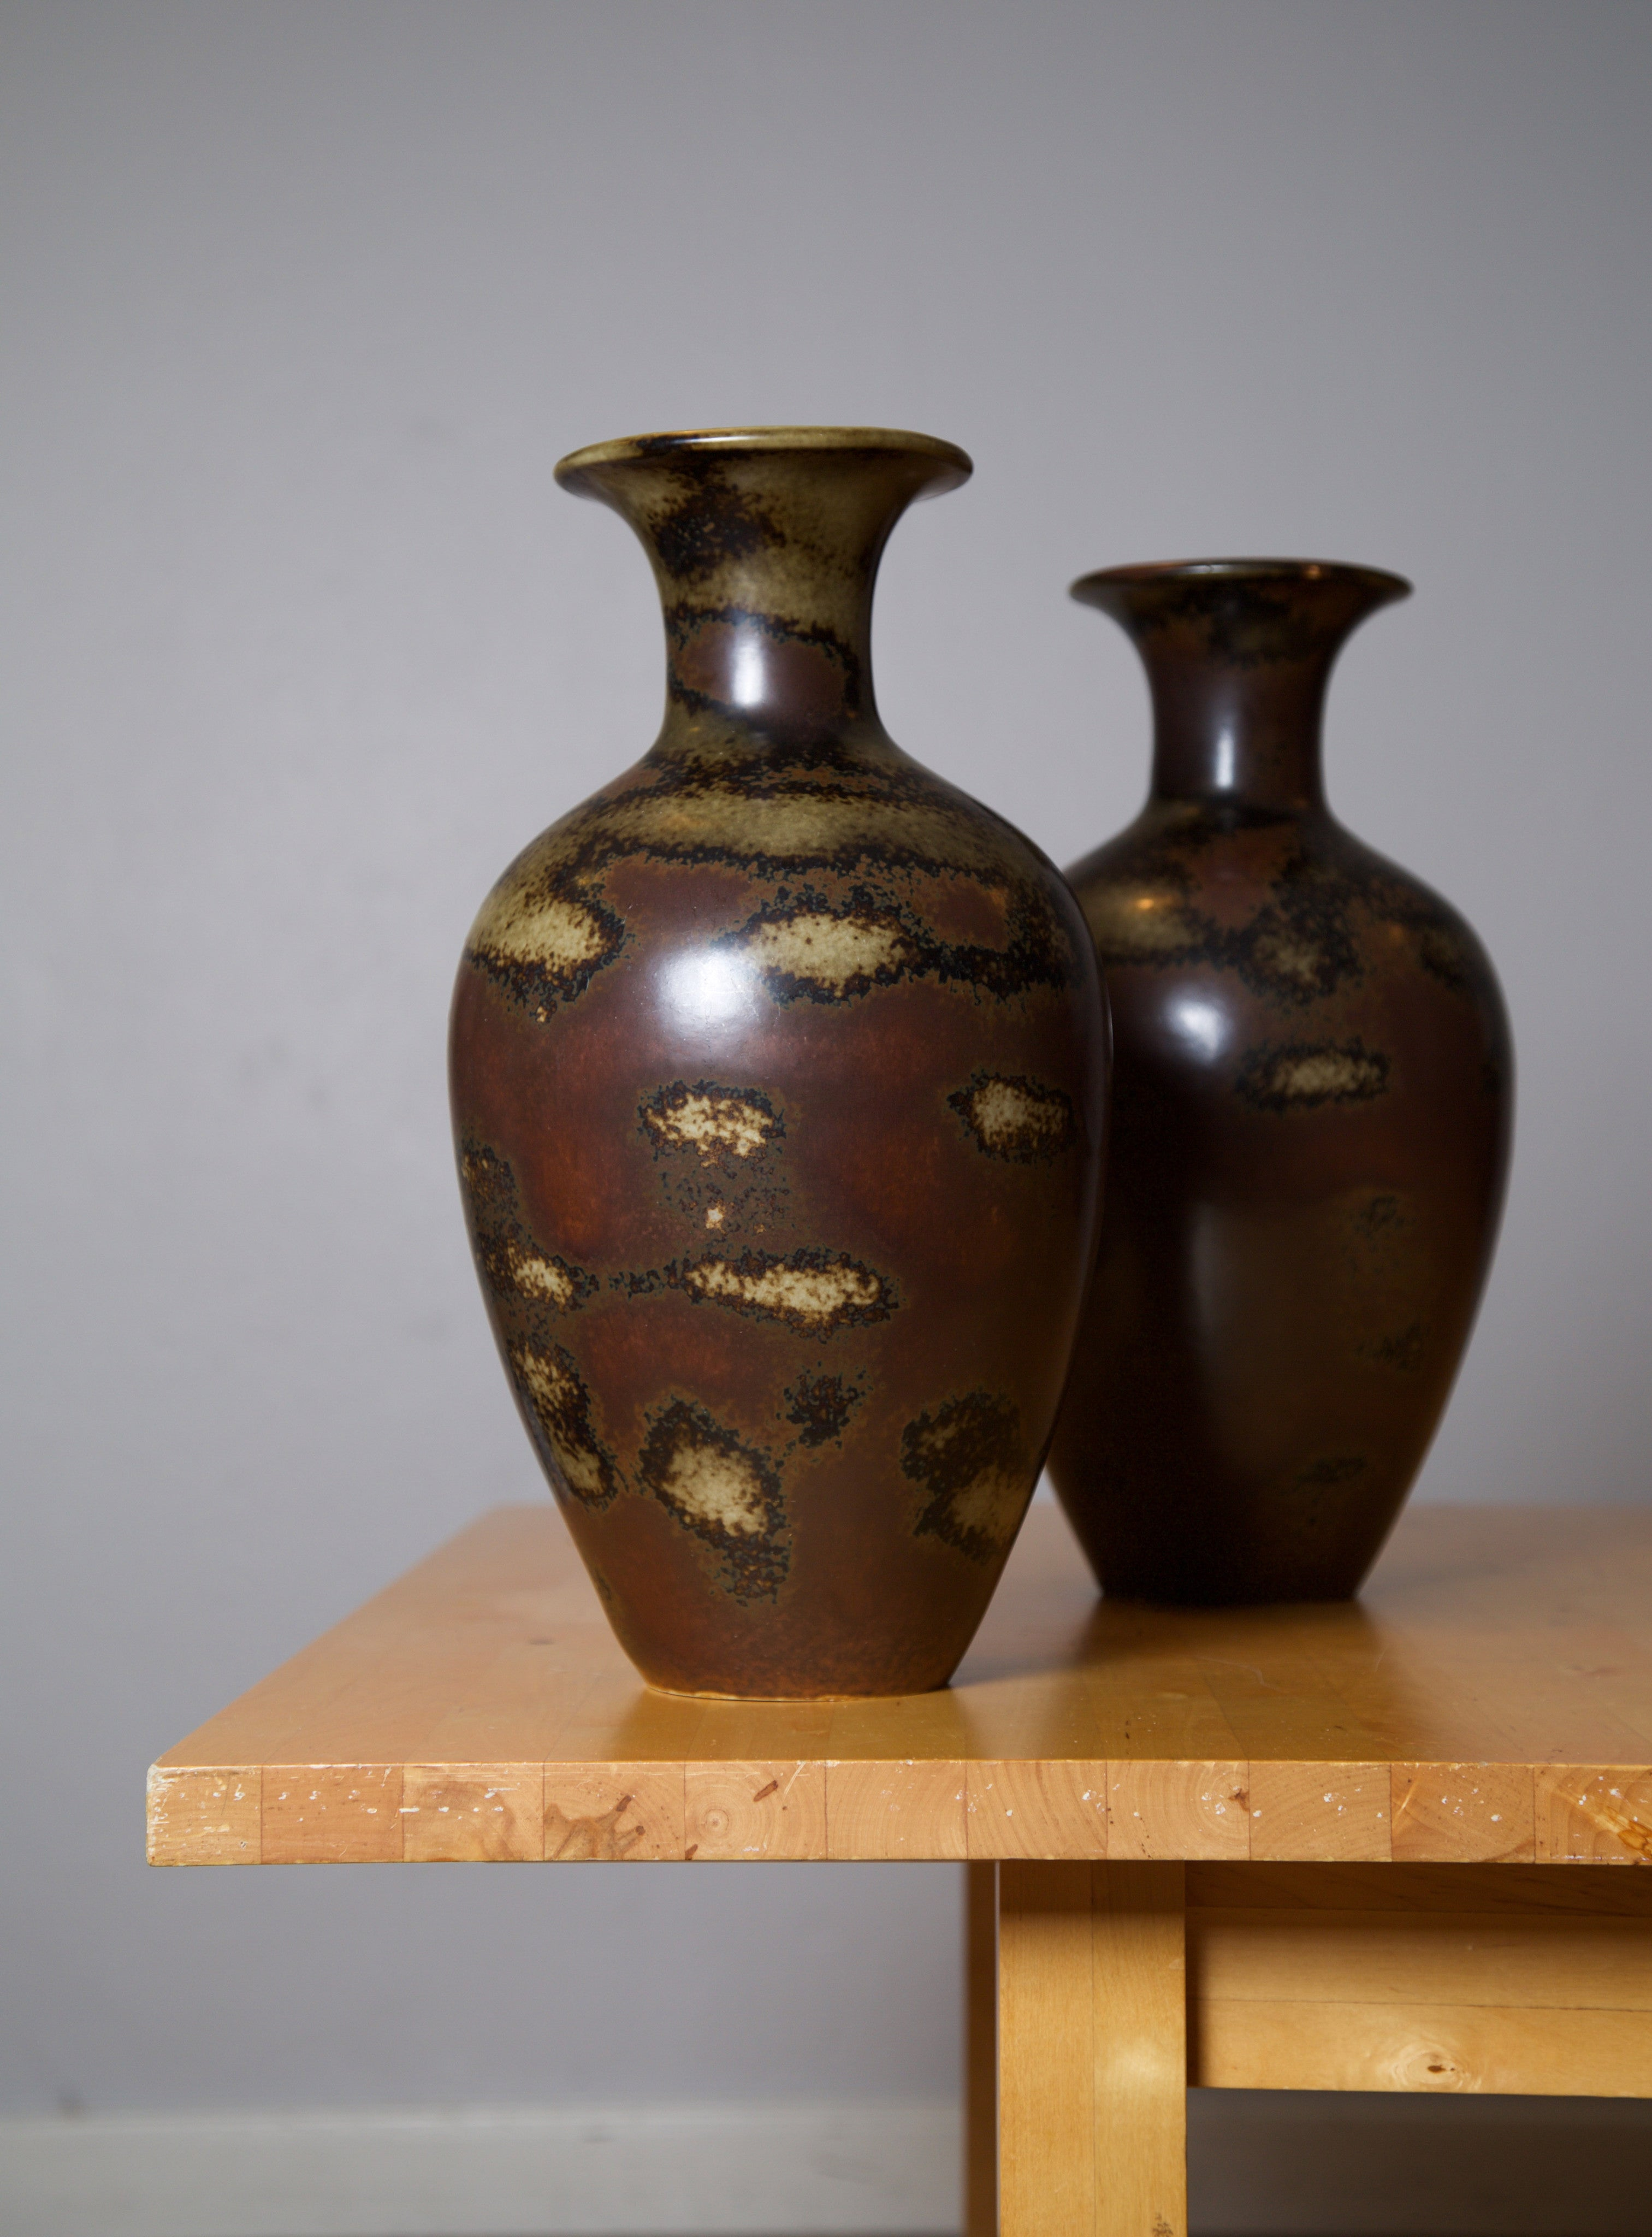 Gunnar Nylund, Pair of Floor Vases by Rörstrand Ab, Sweden, Early 1950s - The Exchange Int